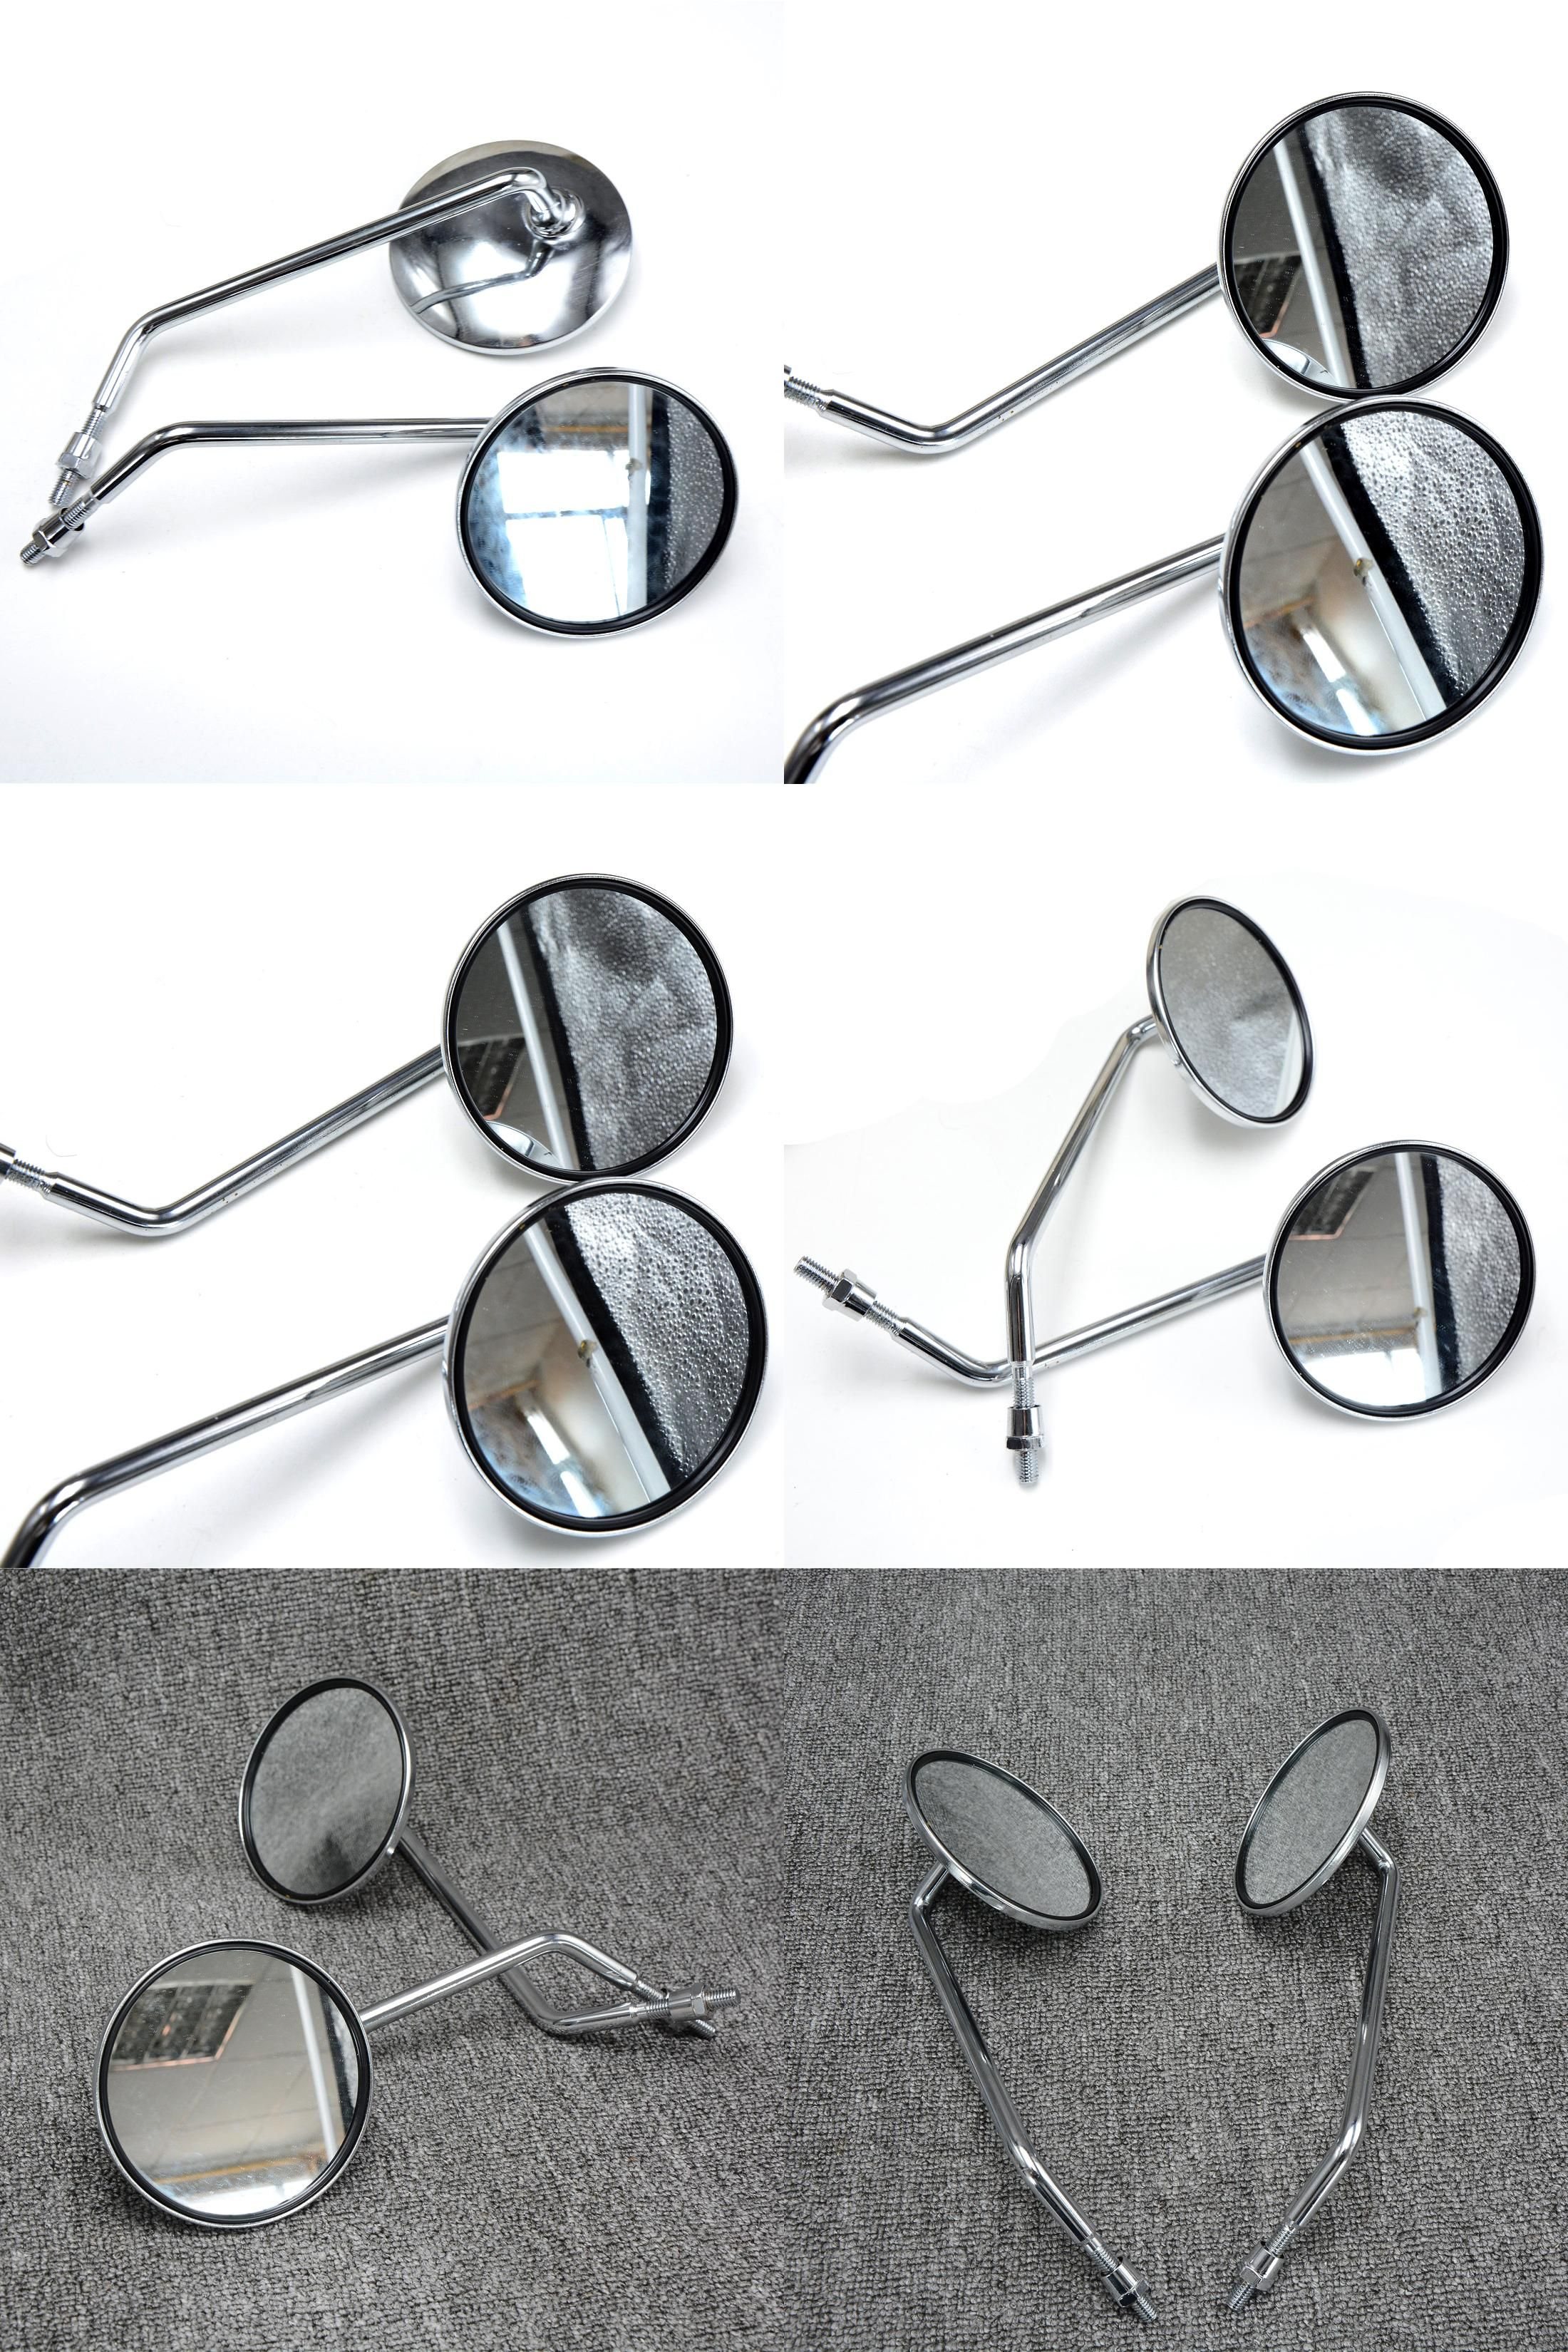 visit to buy 8mm 10mm universal motorcycle accessories mirrors chrome round mirror motorcycle